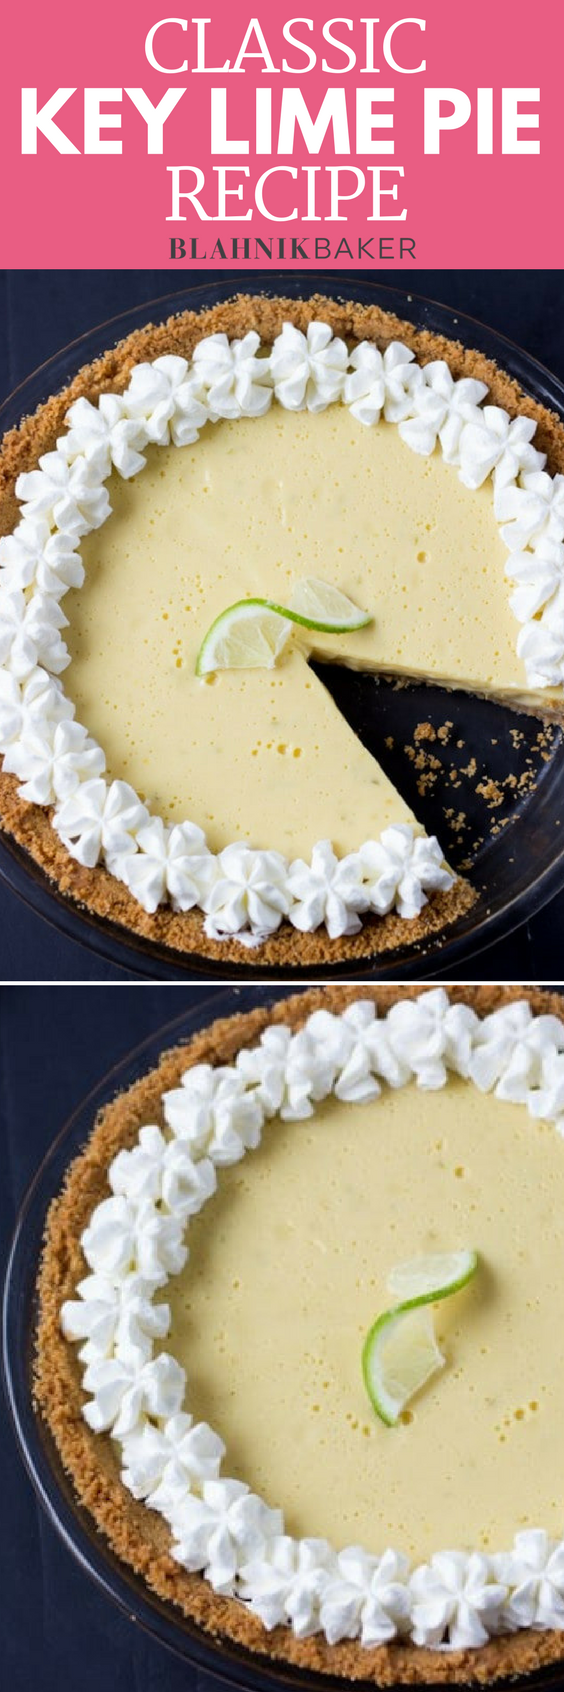 This classic key lime pie recipe is the only one you will need! It's creamy, luscious and perfectly tart with fresh key lime juice. Get the recipe here!